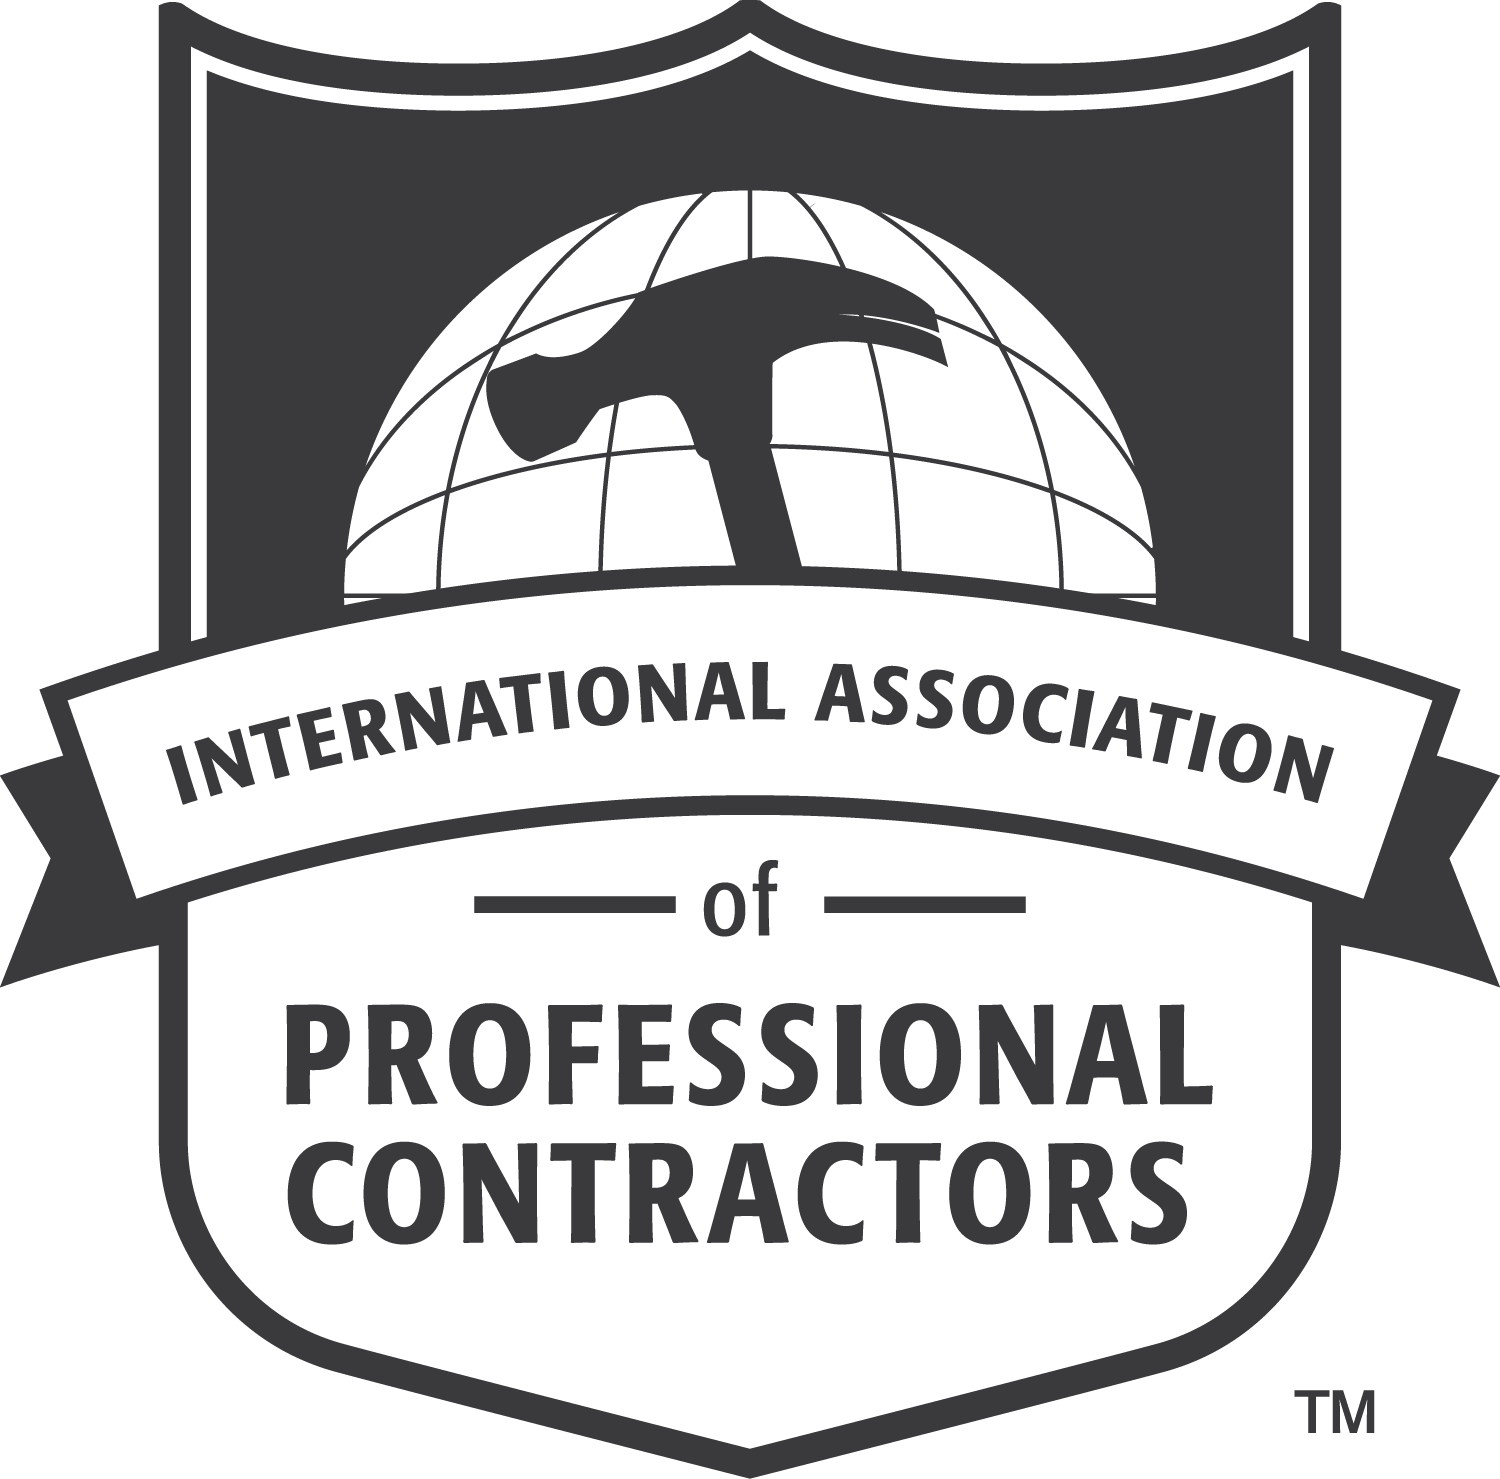 Contractors association marketing png. Contractor clipart construction equipment tool